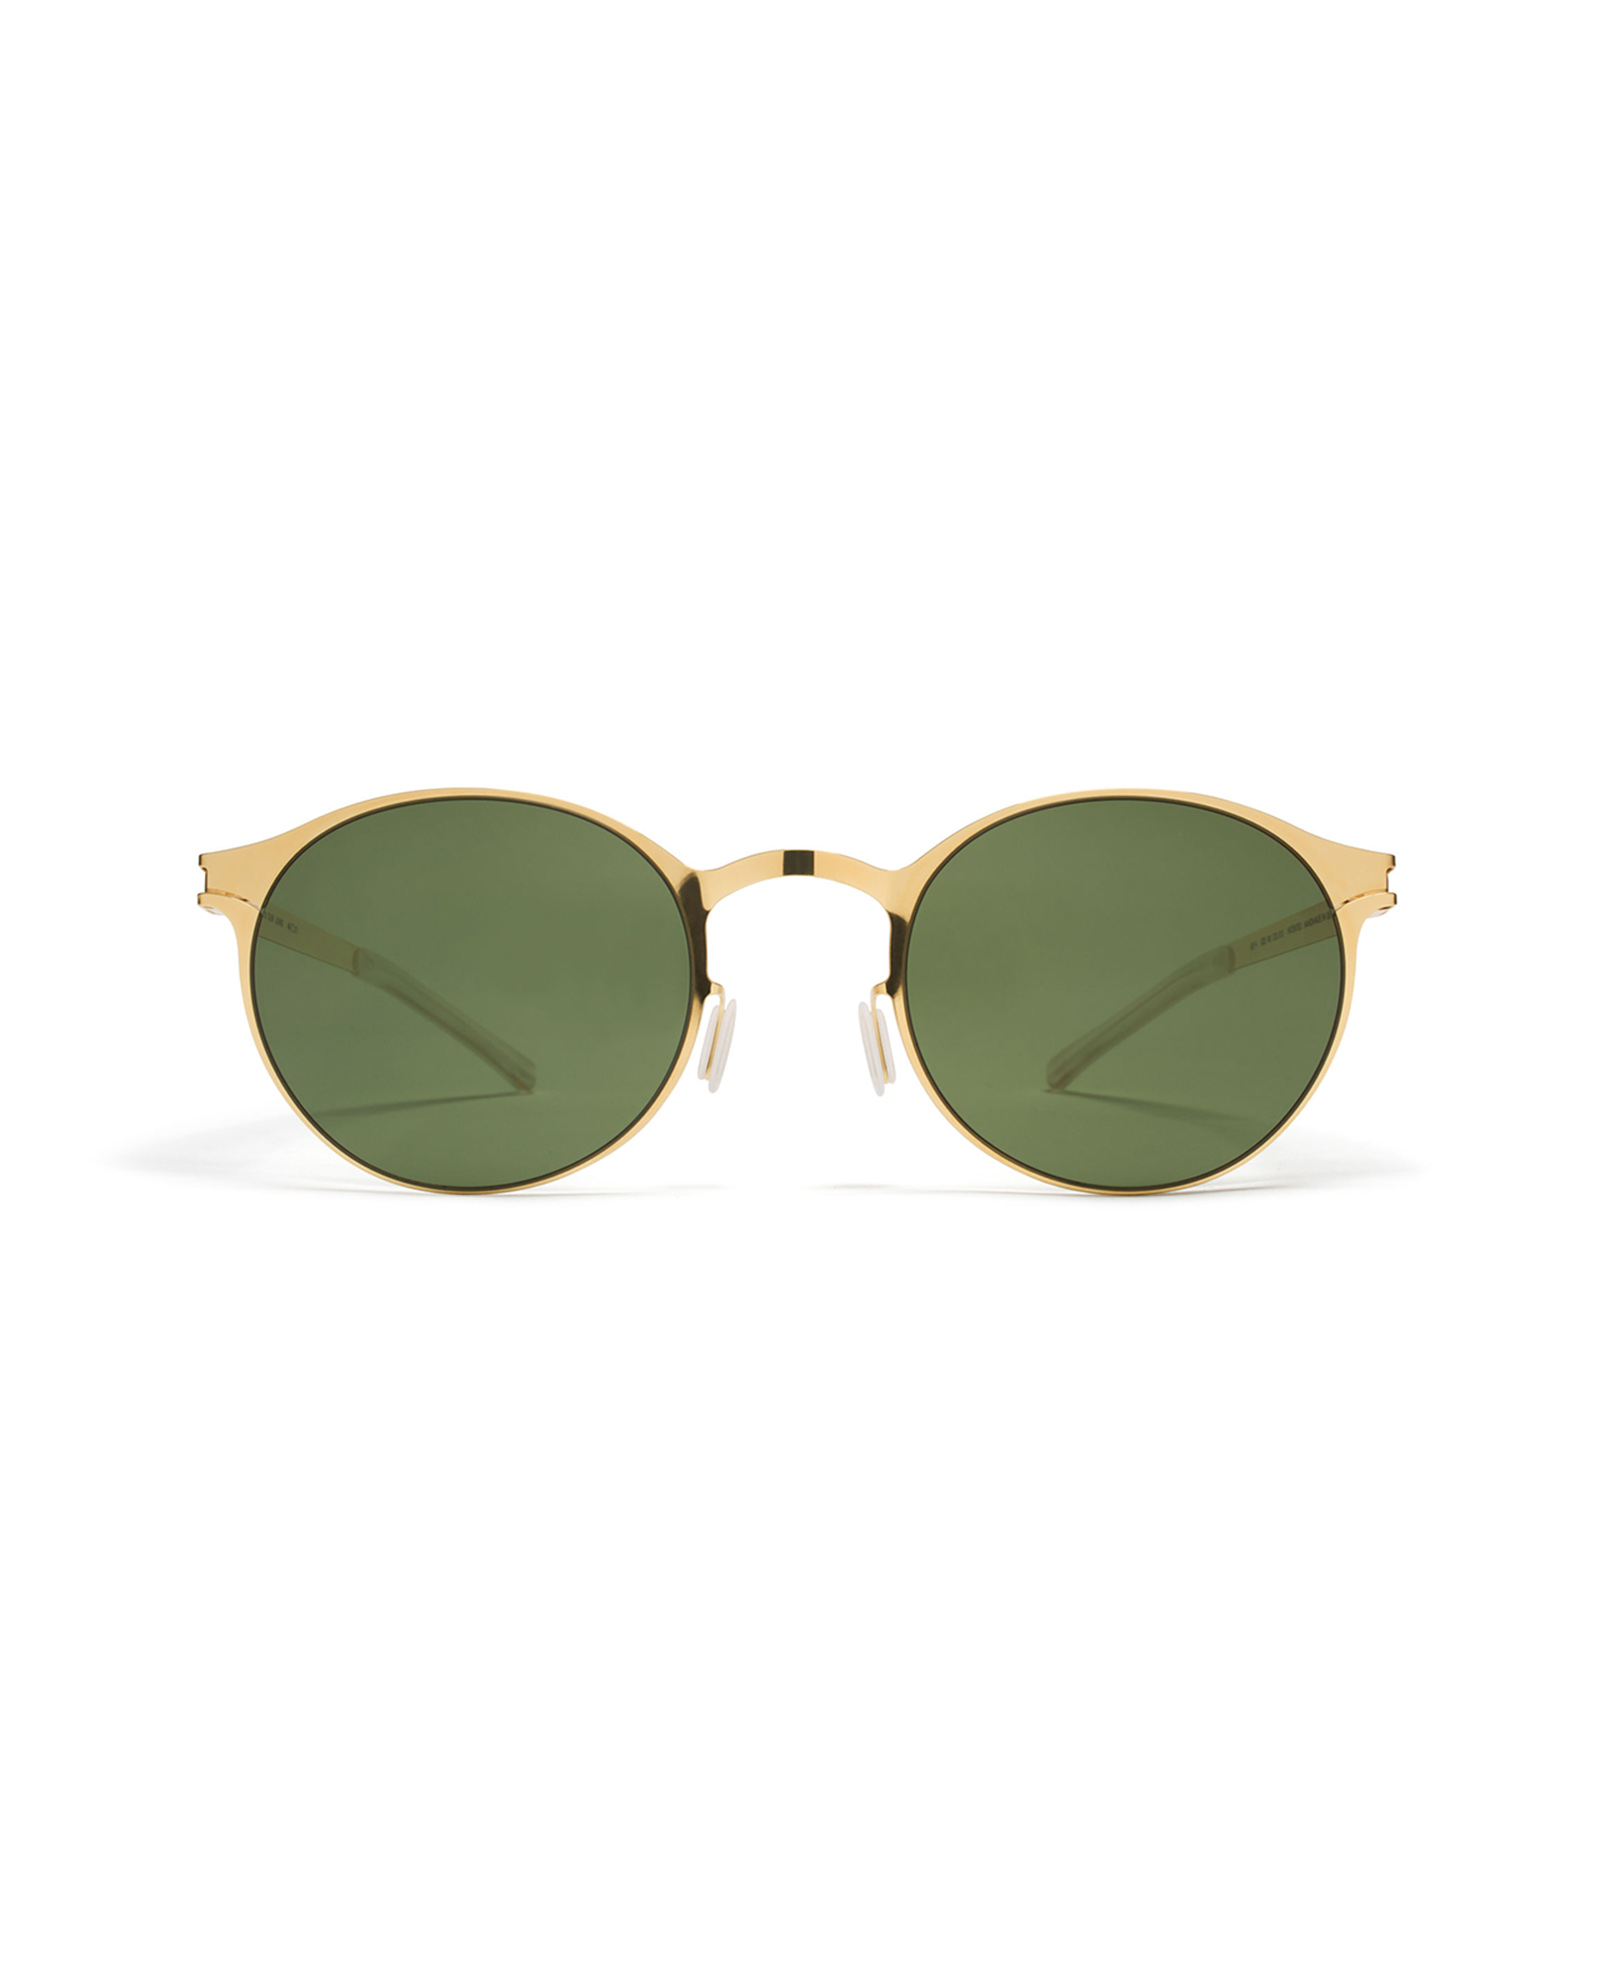 https://www.polydoruoptika.gr/wp-content/uploads/2018/01/mykita-no1-sun-junis-glossygold-my-fern-polarised-2.jpg